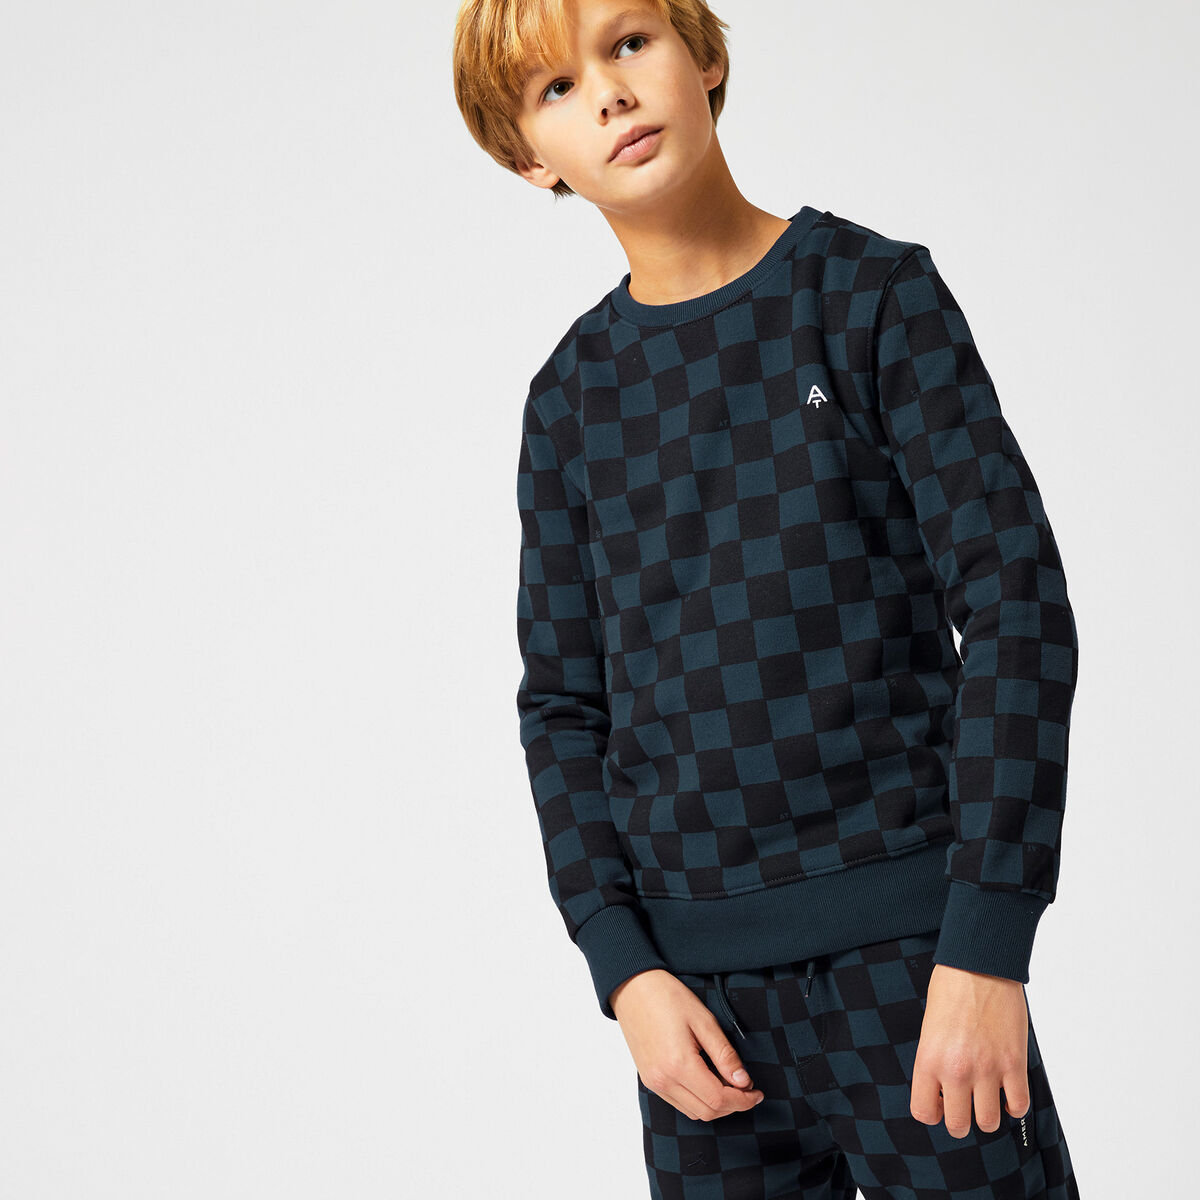 Sweater Sonny jr